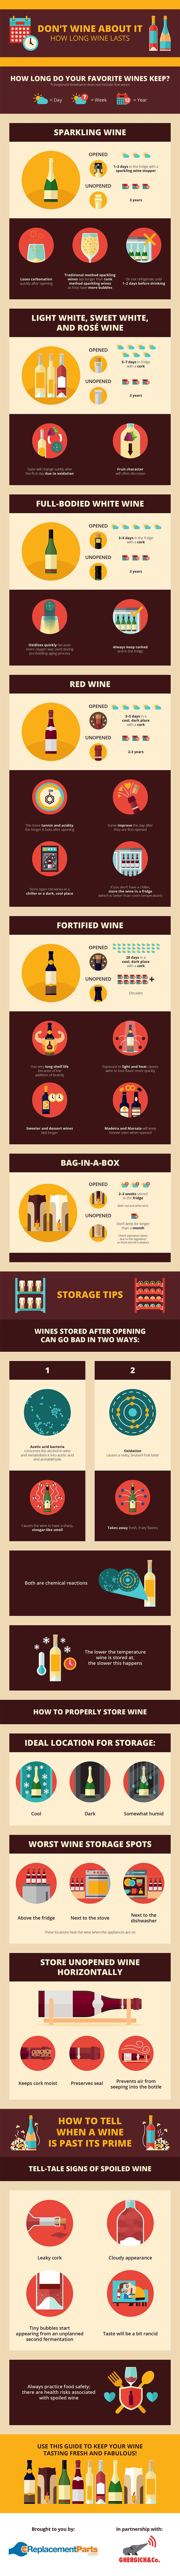 Don't Wine About It: How Long Wine Lasts #Infographic #Food #Wine